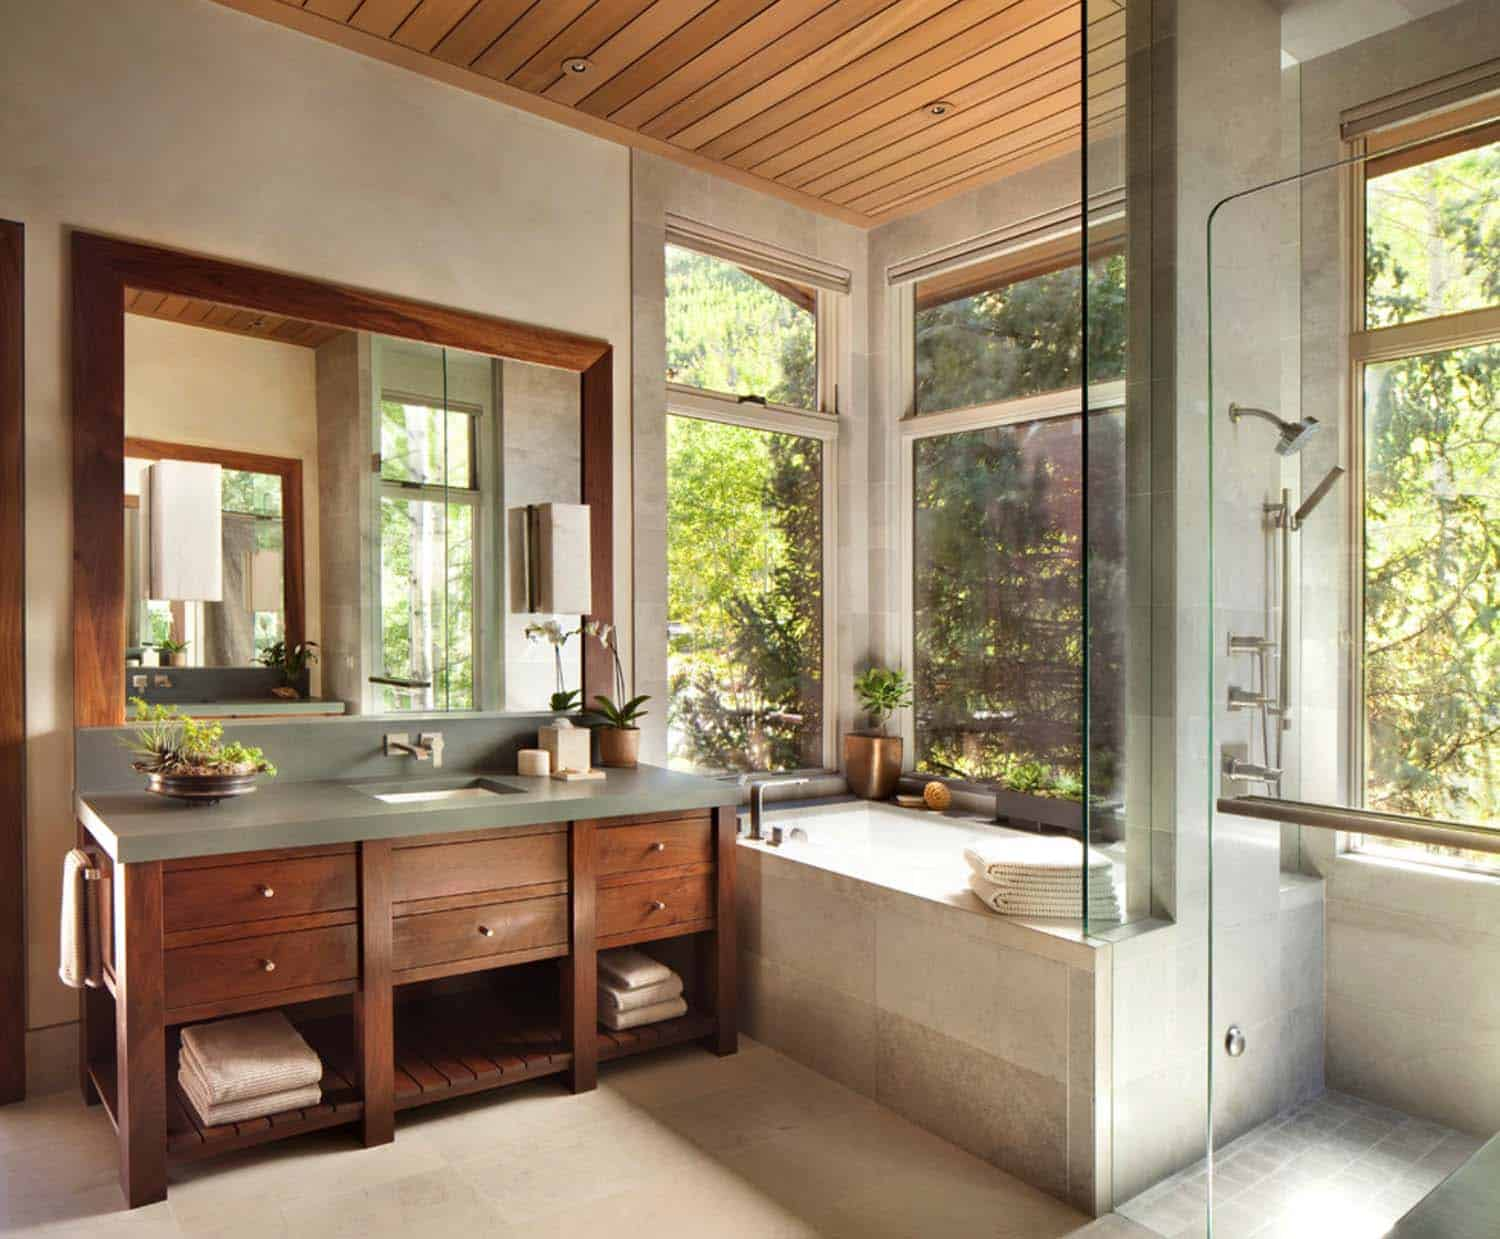 Contemporary Bathrooms-Mountain Retreats-18-1 Kindesign